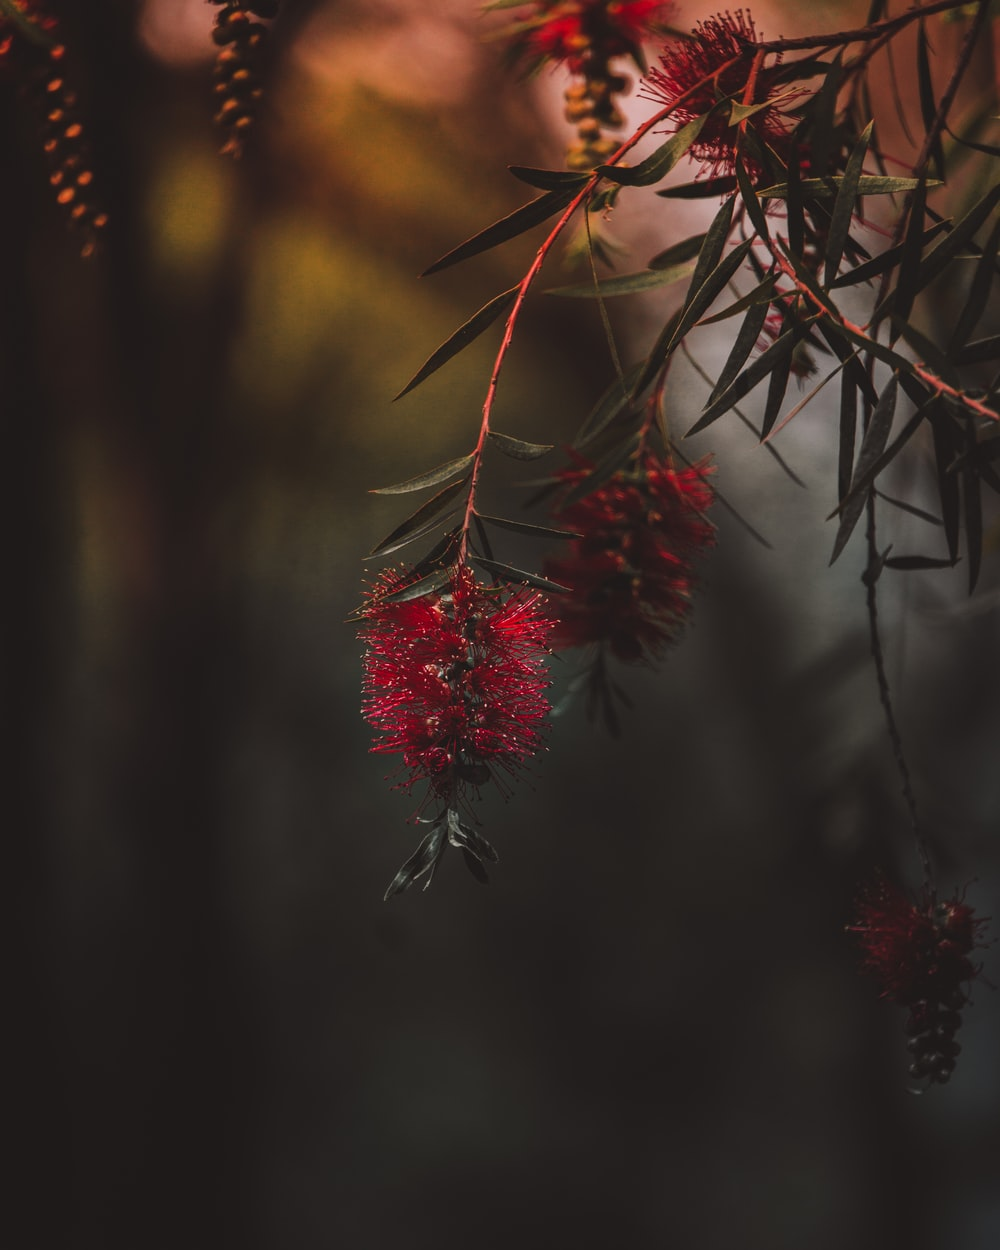 red flowers on green leafed plant